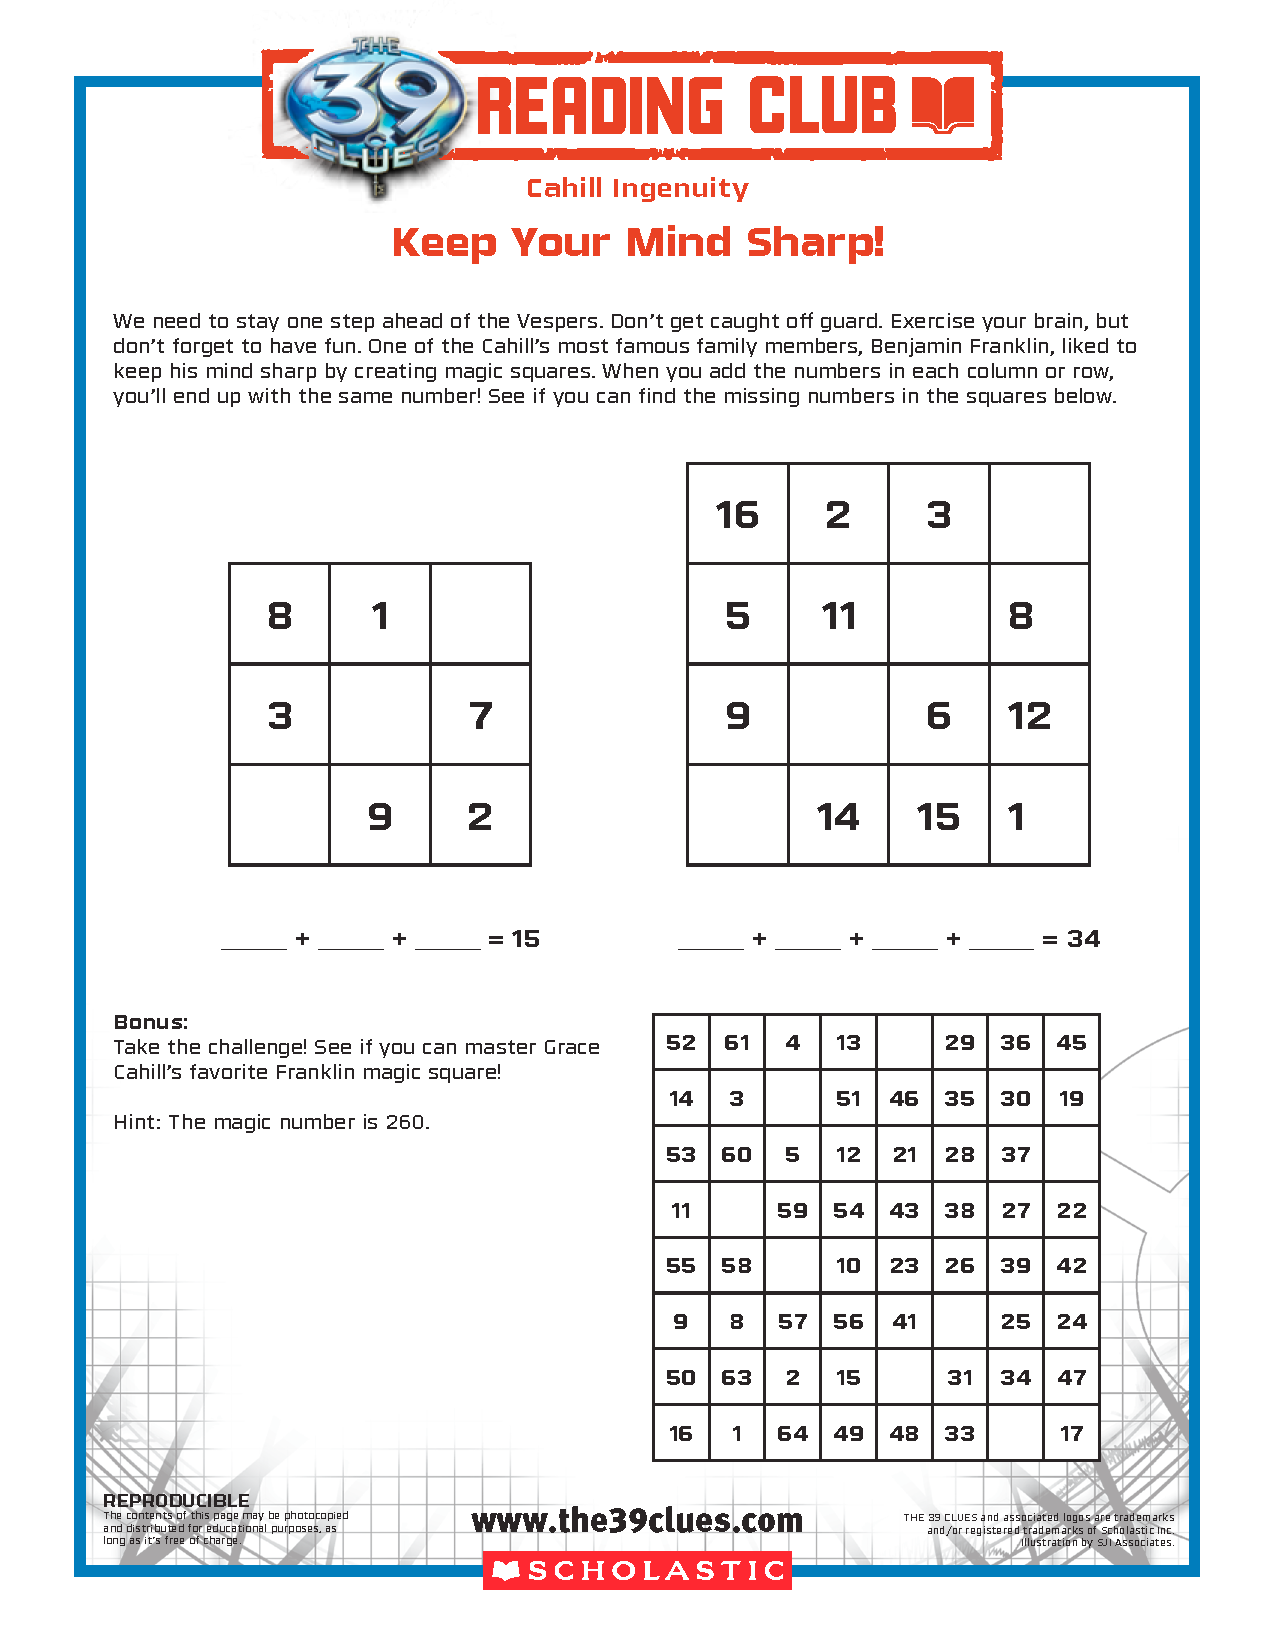 Free Magic Square Activity Sheet From The 39 Clues Reading